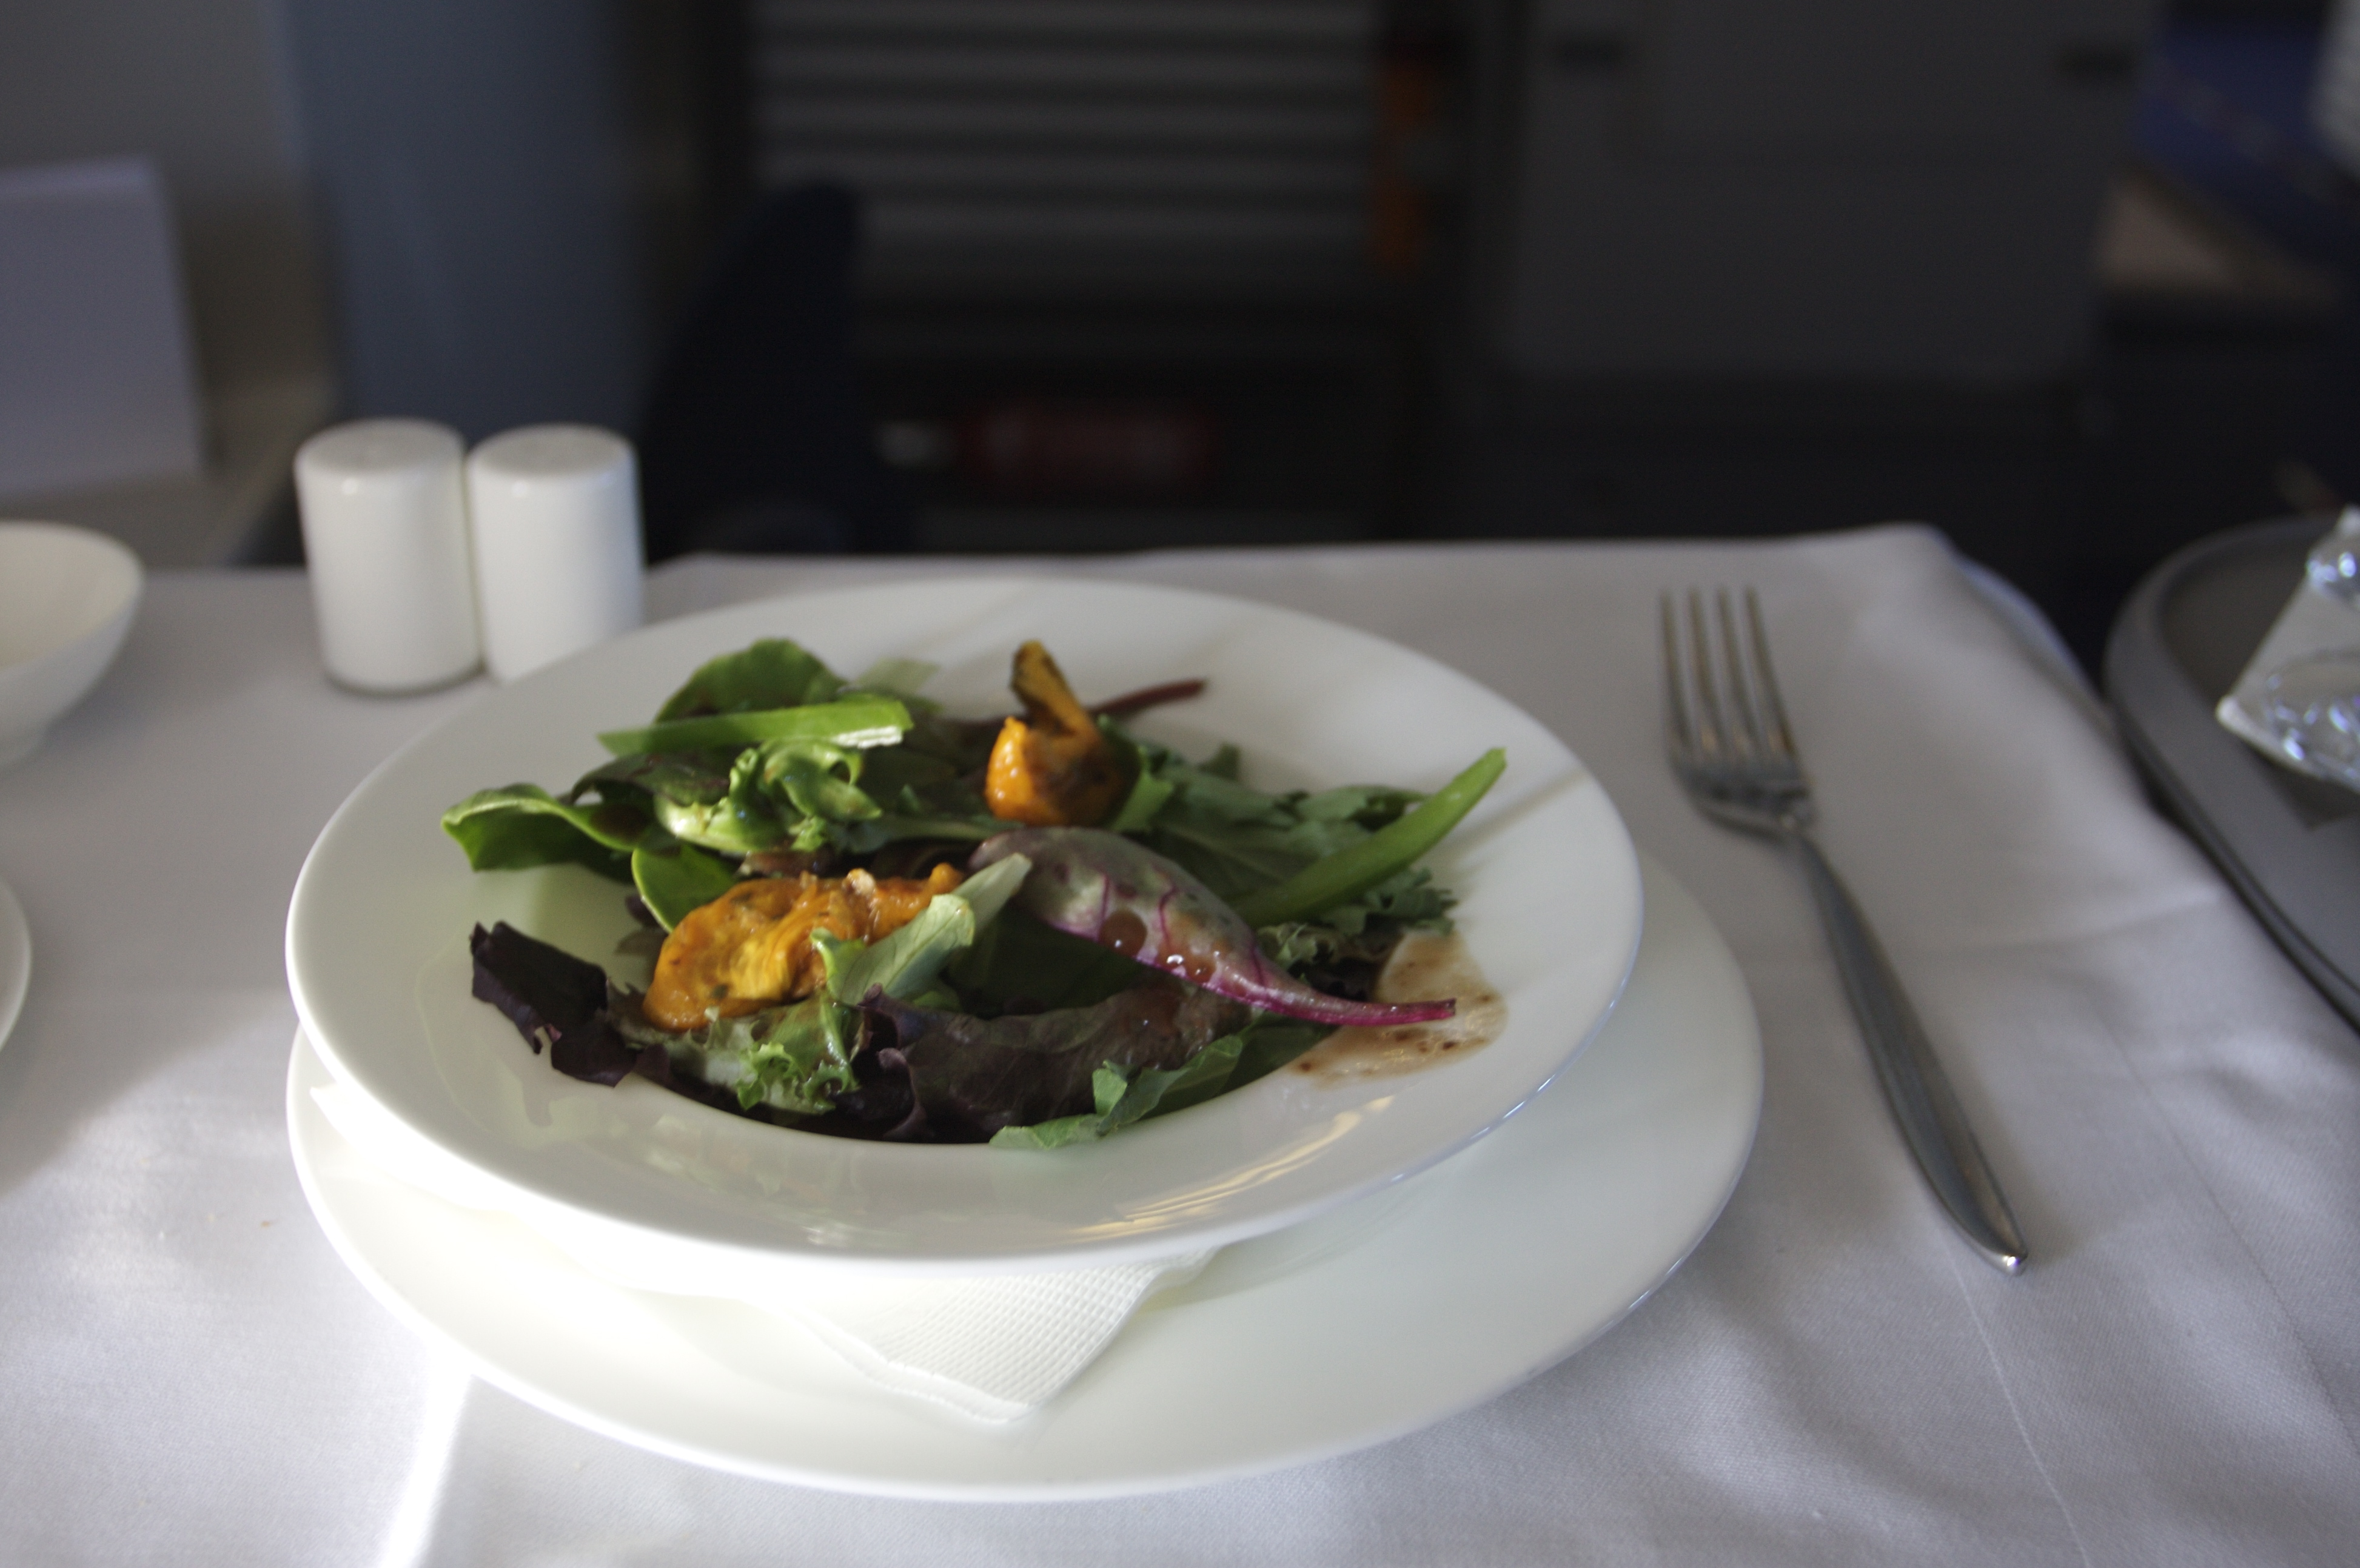 Lufthansa First Class - Meal | Flickr - Photo Sharing!